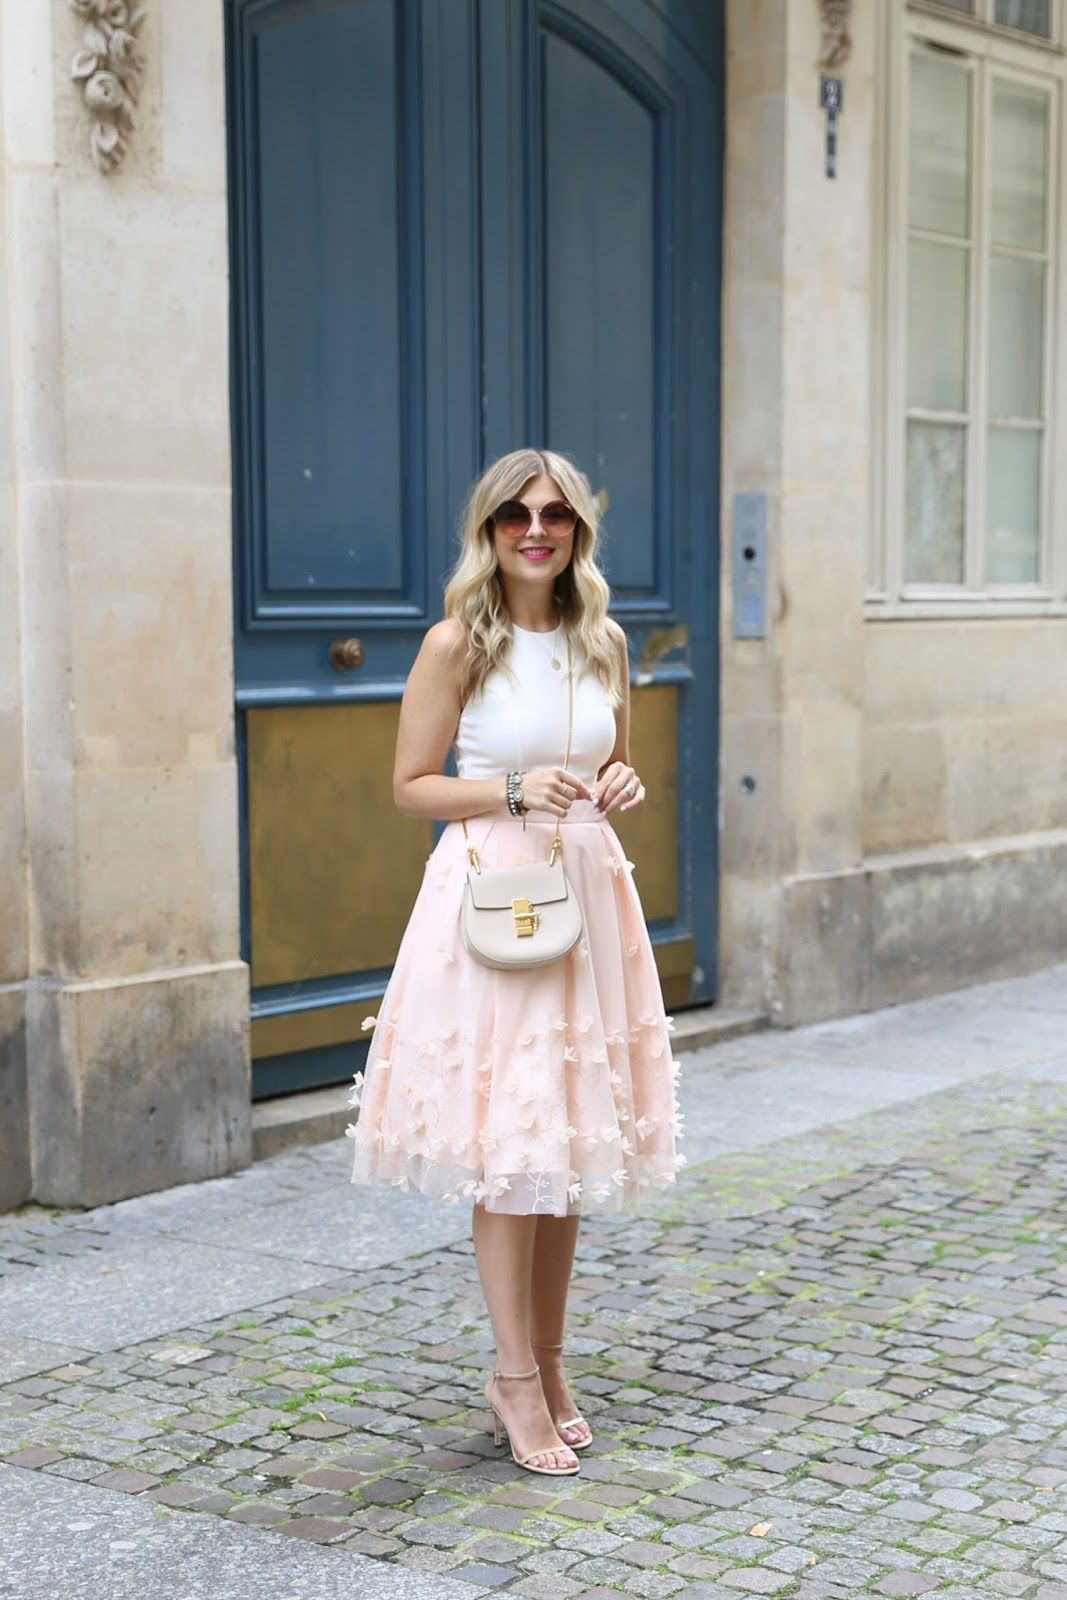 smart casual, dressed up, pink skirt, heels, summer, style, fashion ...